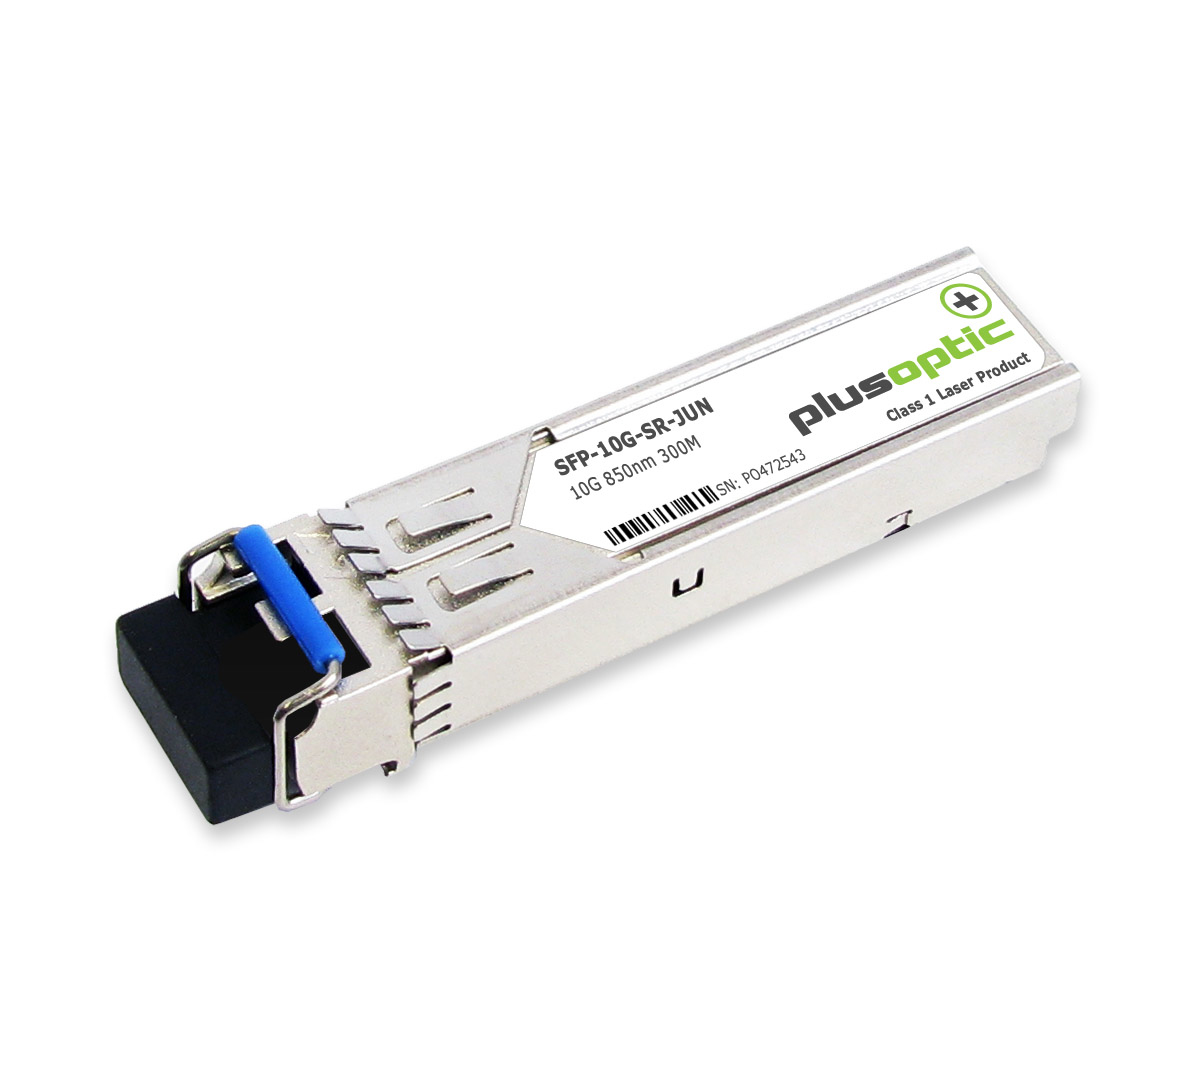 Juniper Compatible 10g850nm 300mconntranscv Lc